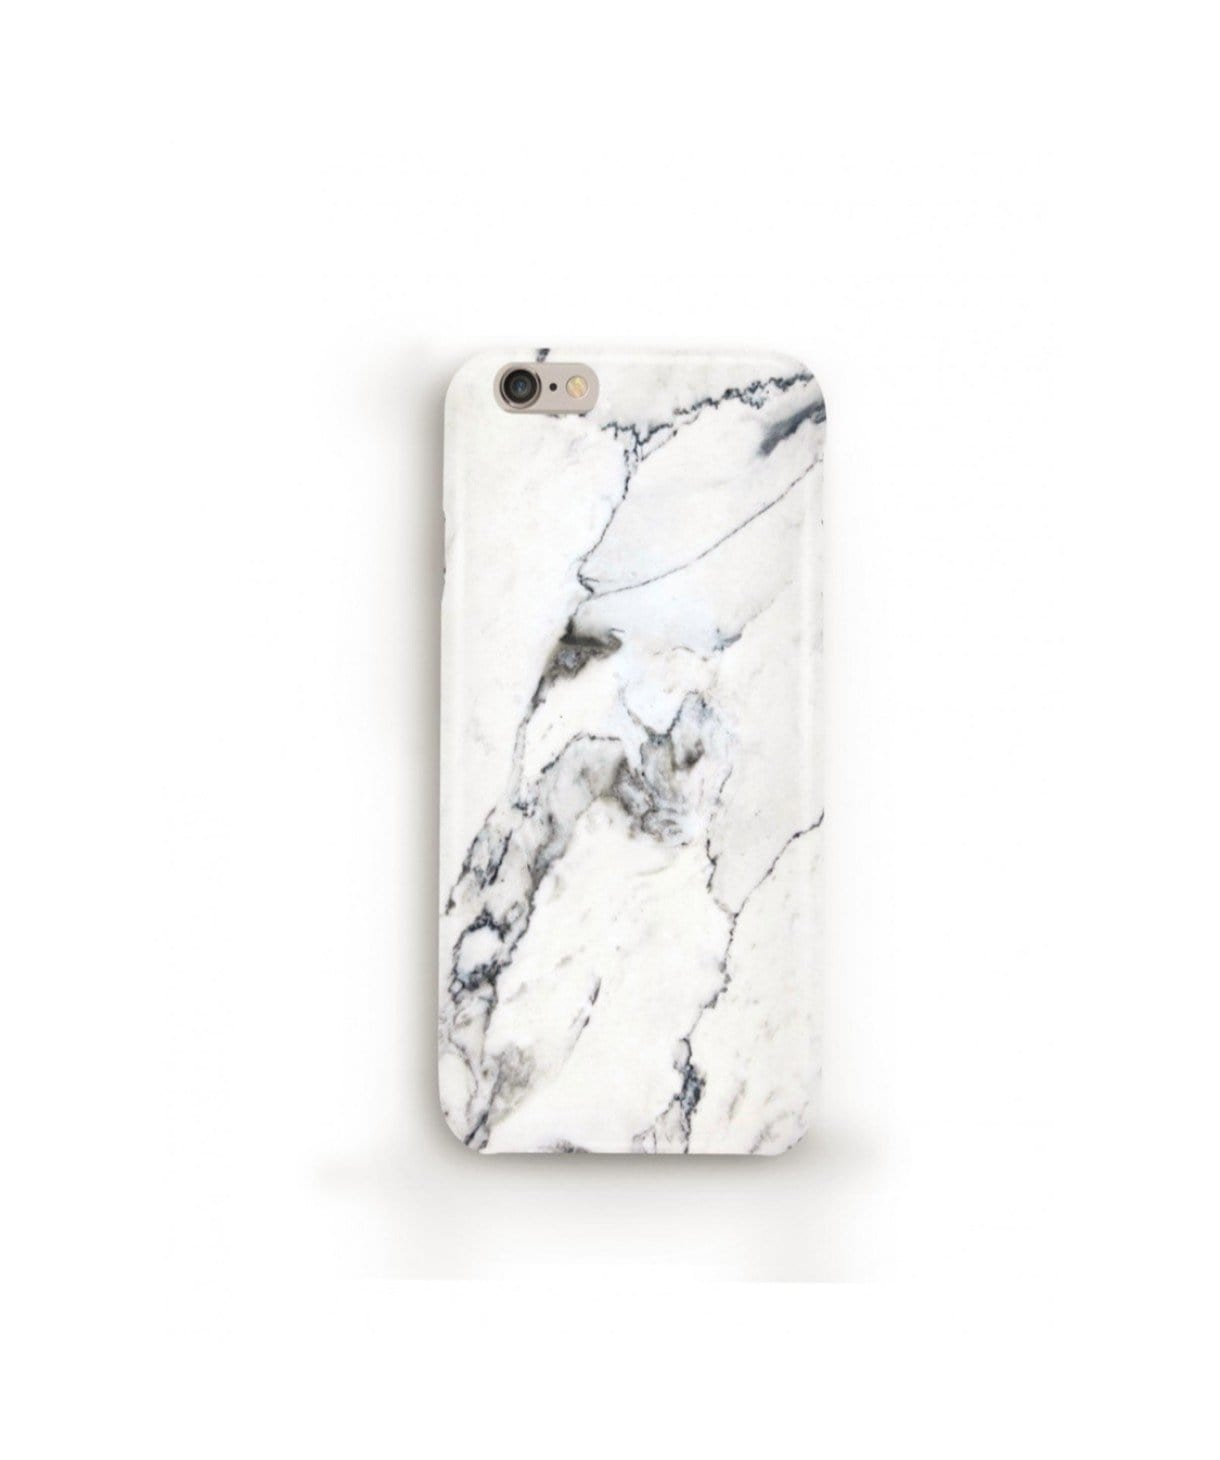 Marble IPhone Cover (Personalisation Available) - Uptownie